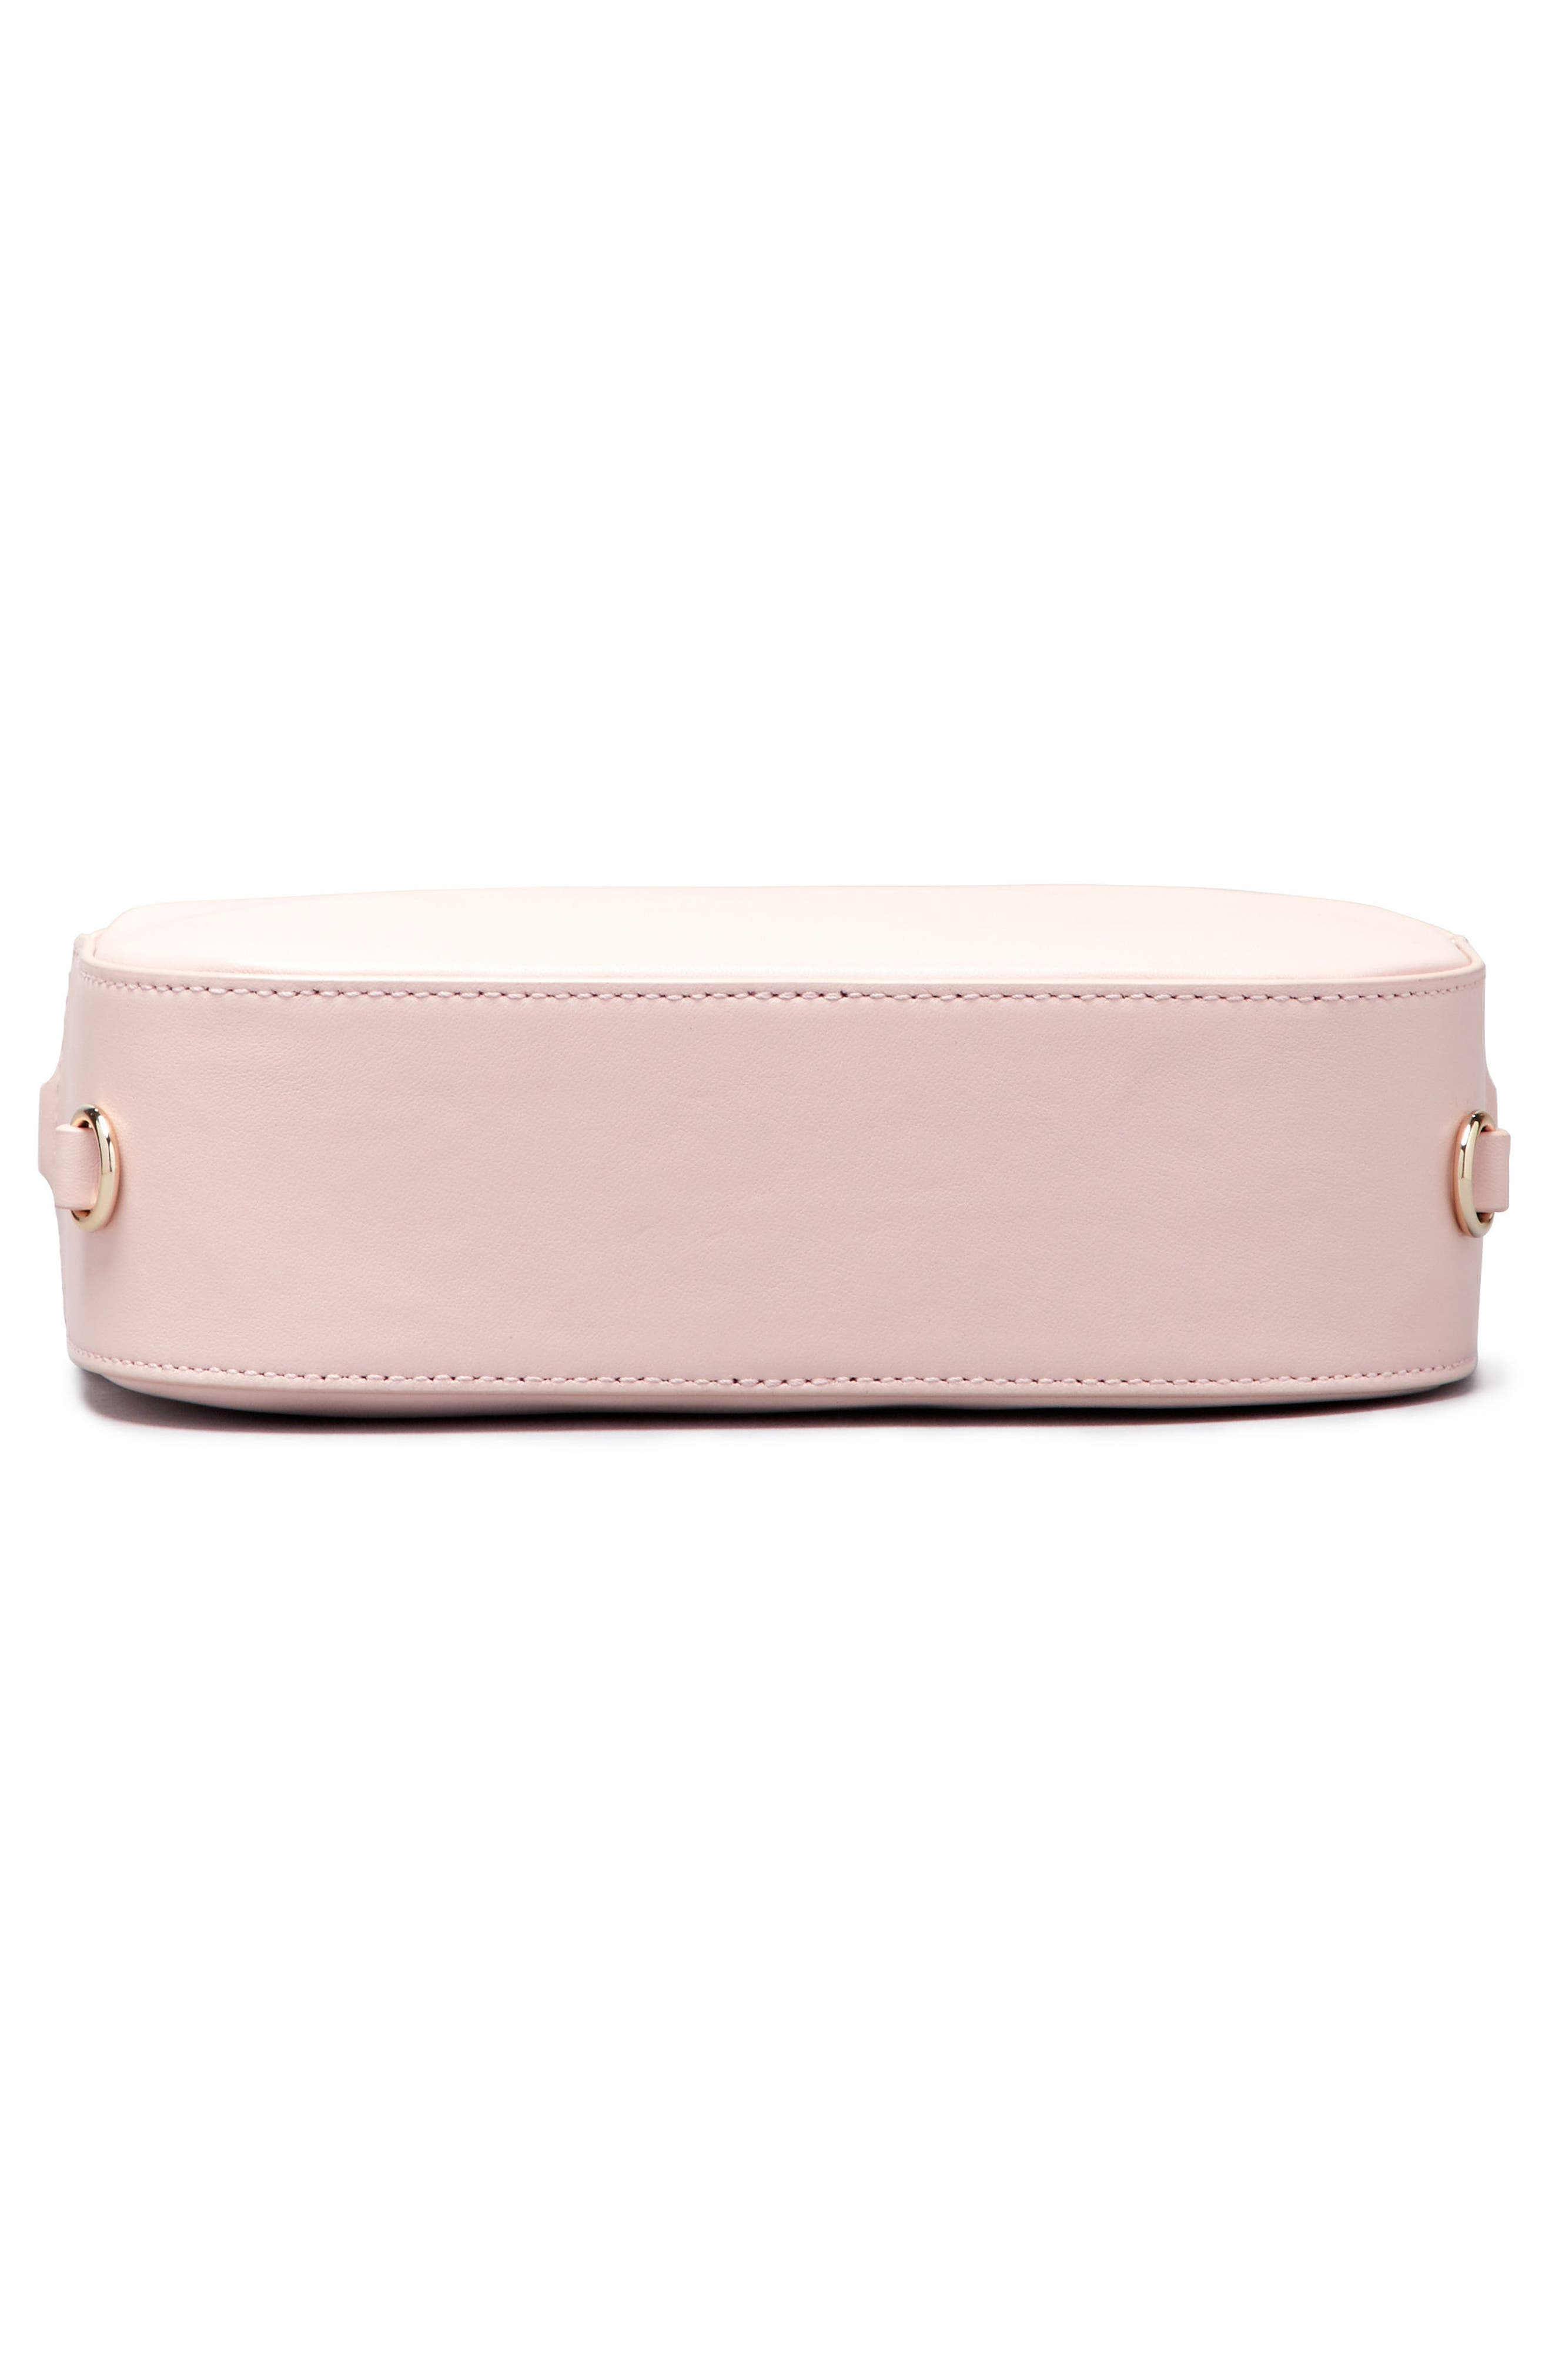 Personalized Leather Camera Bag,                             Alternate thumbnail 12, color,